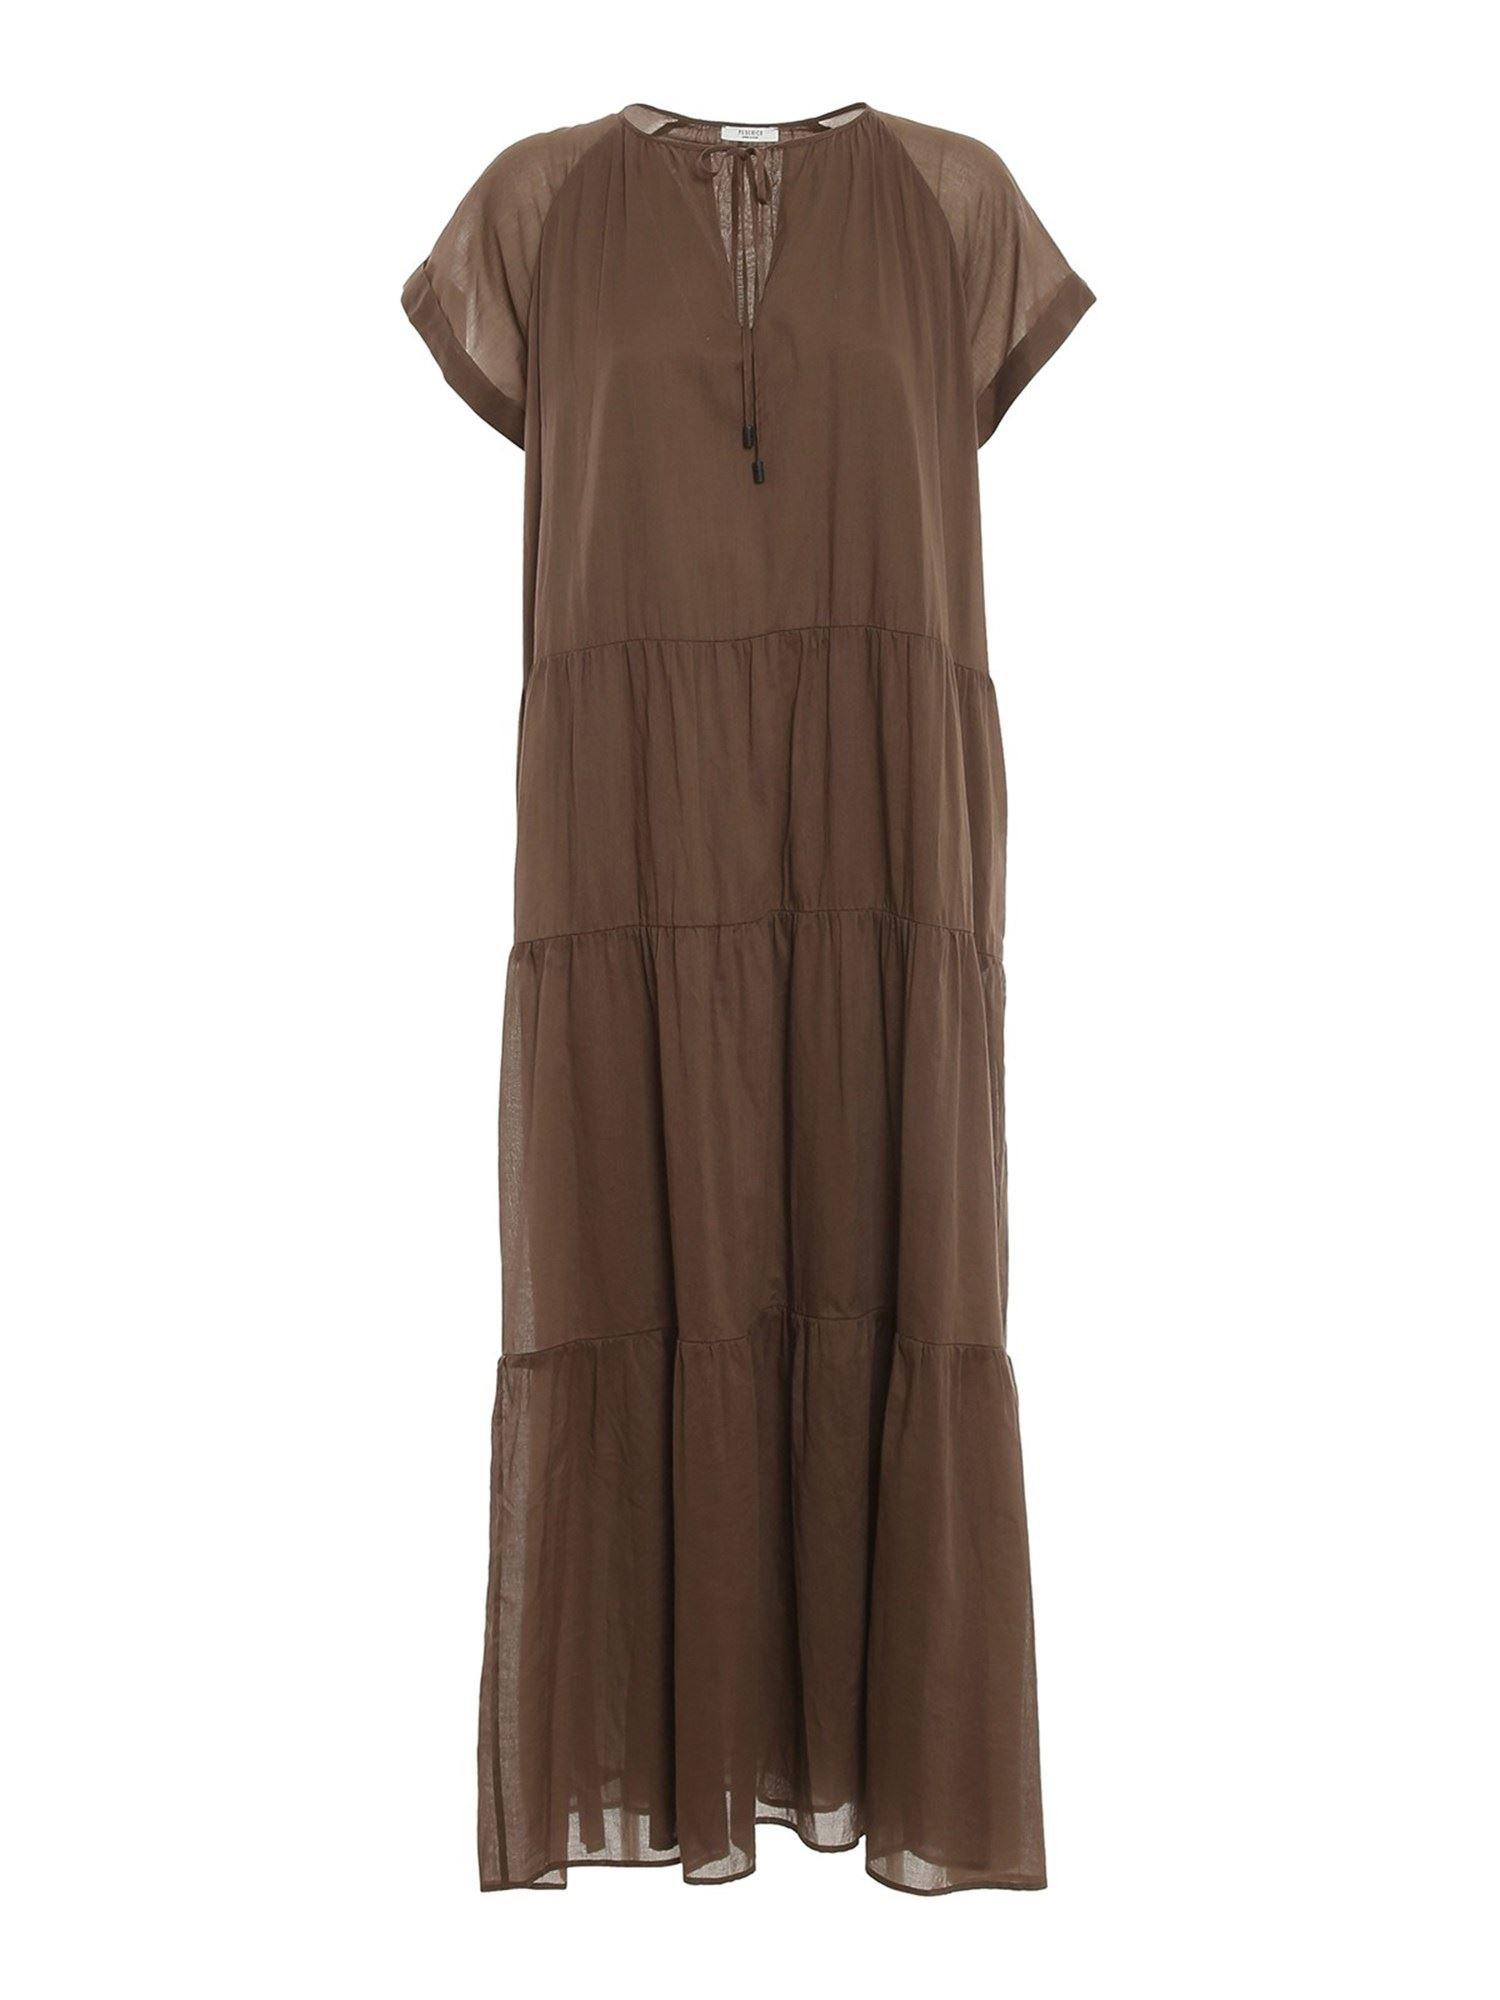 Peserico COTTON V-NECK DRESS IN BROWN